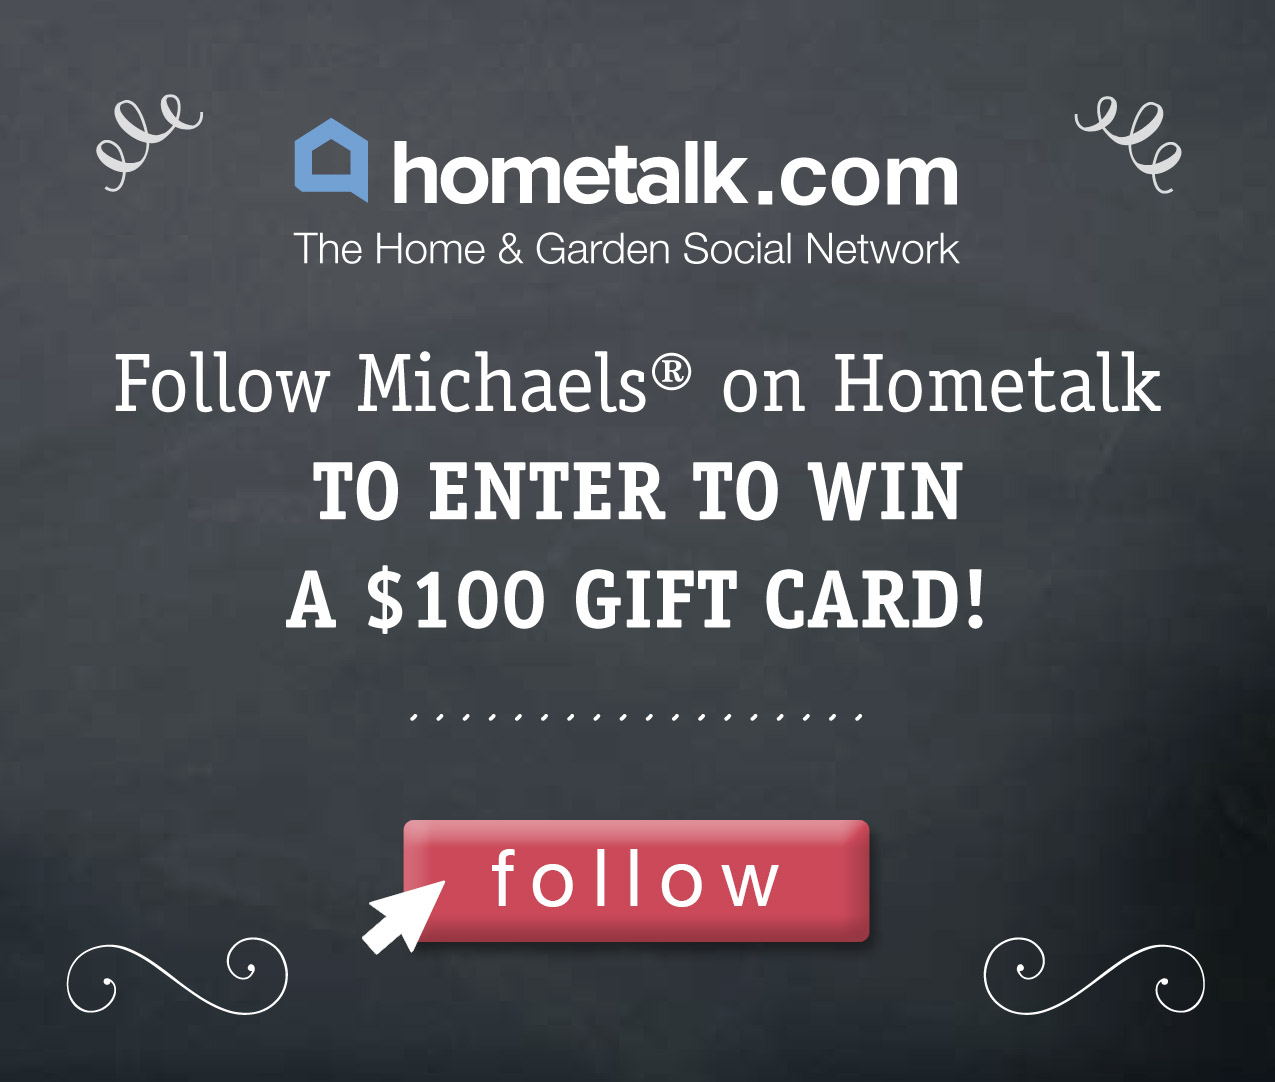 Michaels-hometalk-giveaway3101-2